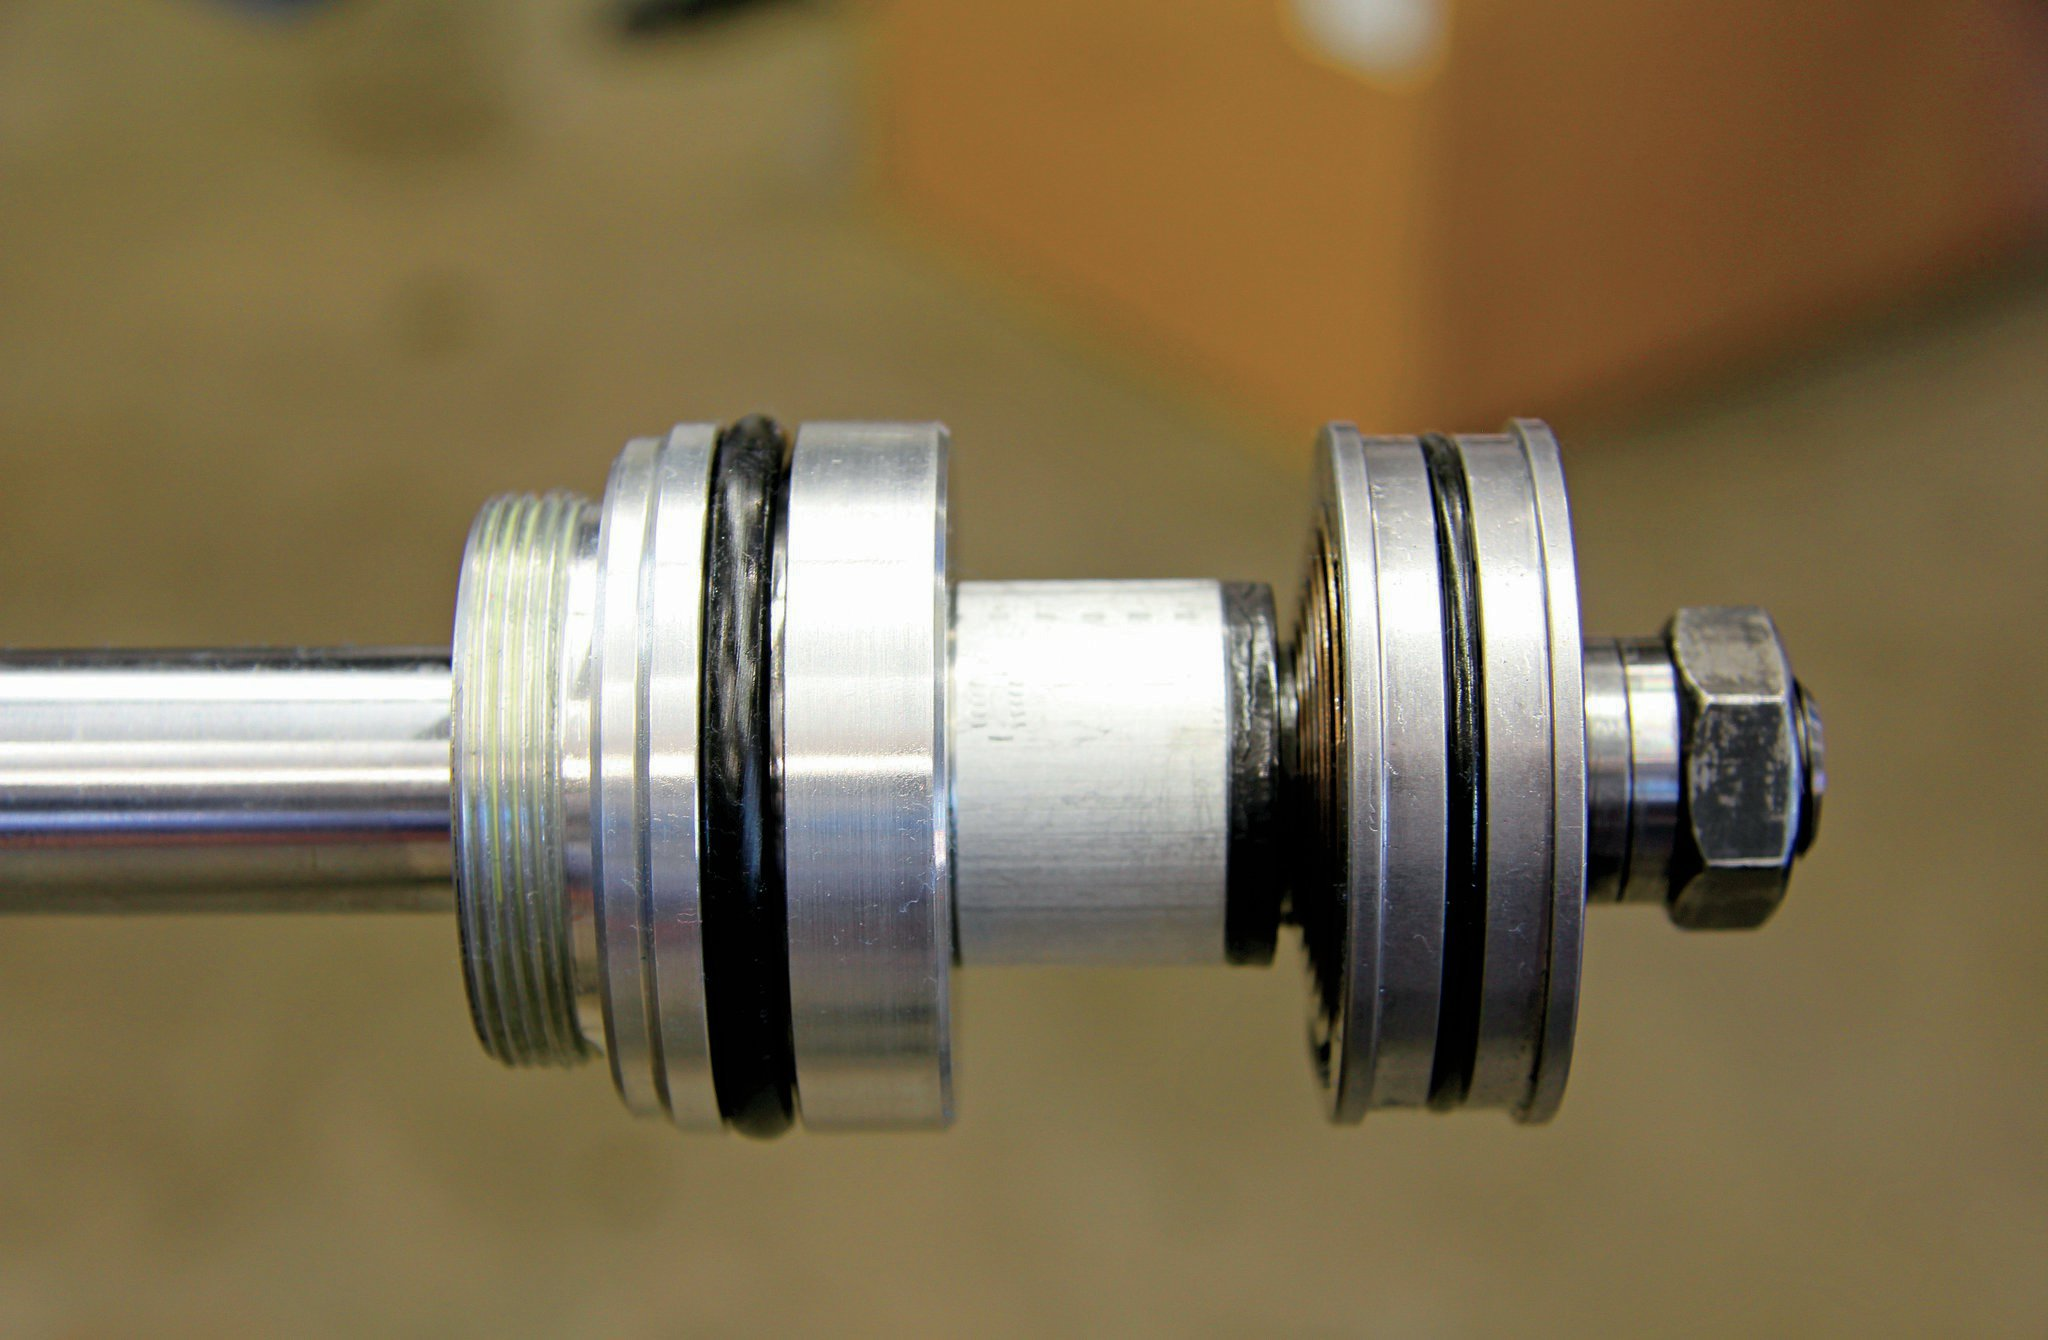 The 2.5 King coilover shock houses the valve piston you see here and a floating piston that resides in the fluid reservoir. To keep debris from entering the shock, King equips the shock with a dust cap, wiper seal, and Teflon-coated brass wear band, which extends the life of the shock, as well as deters leaks.